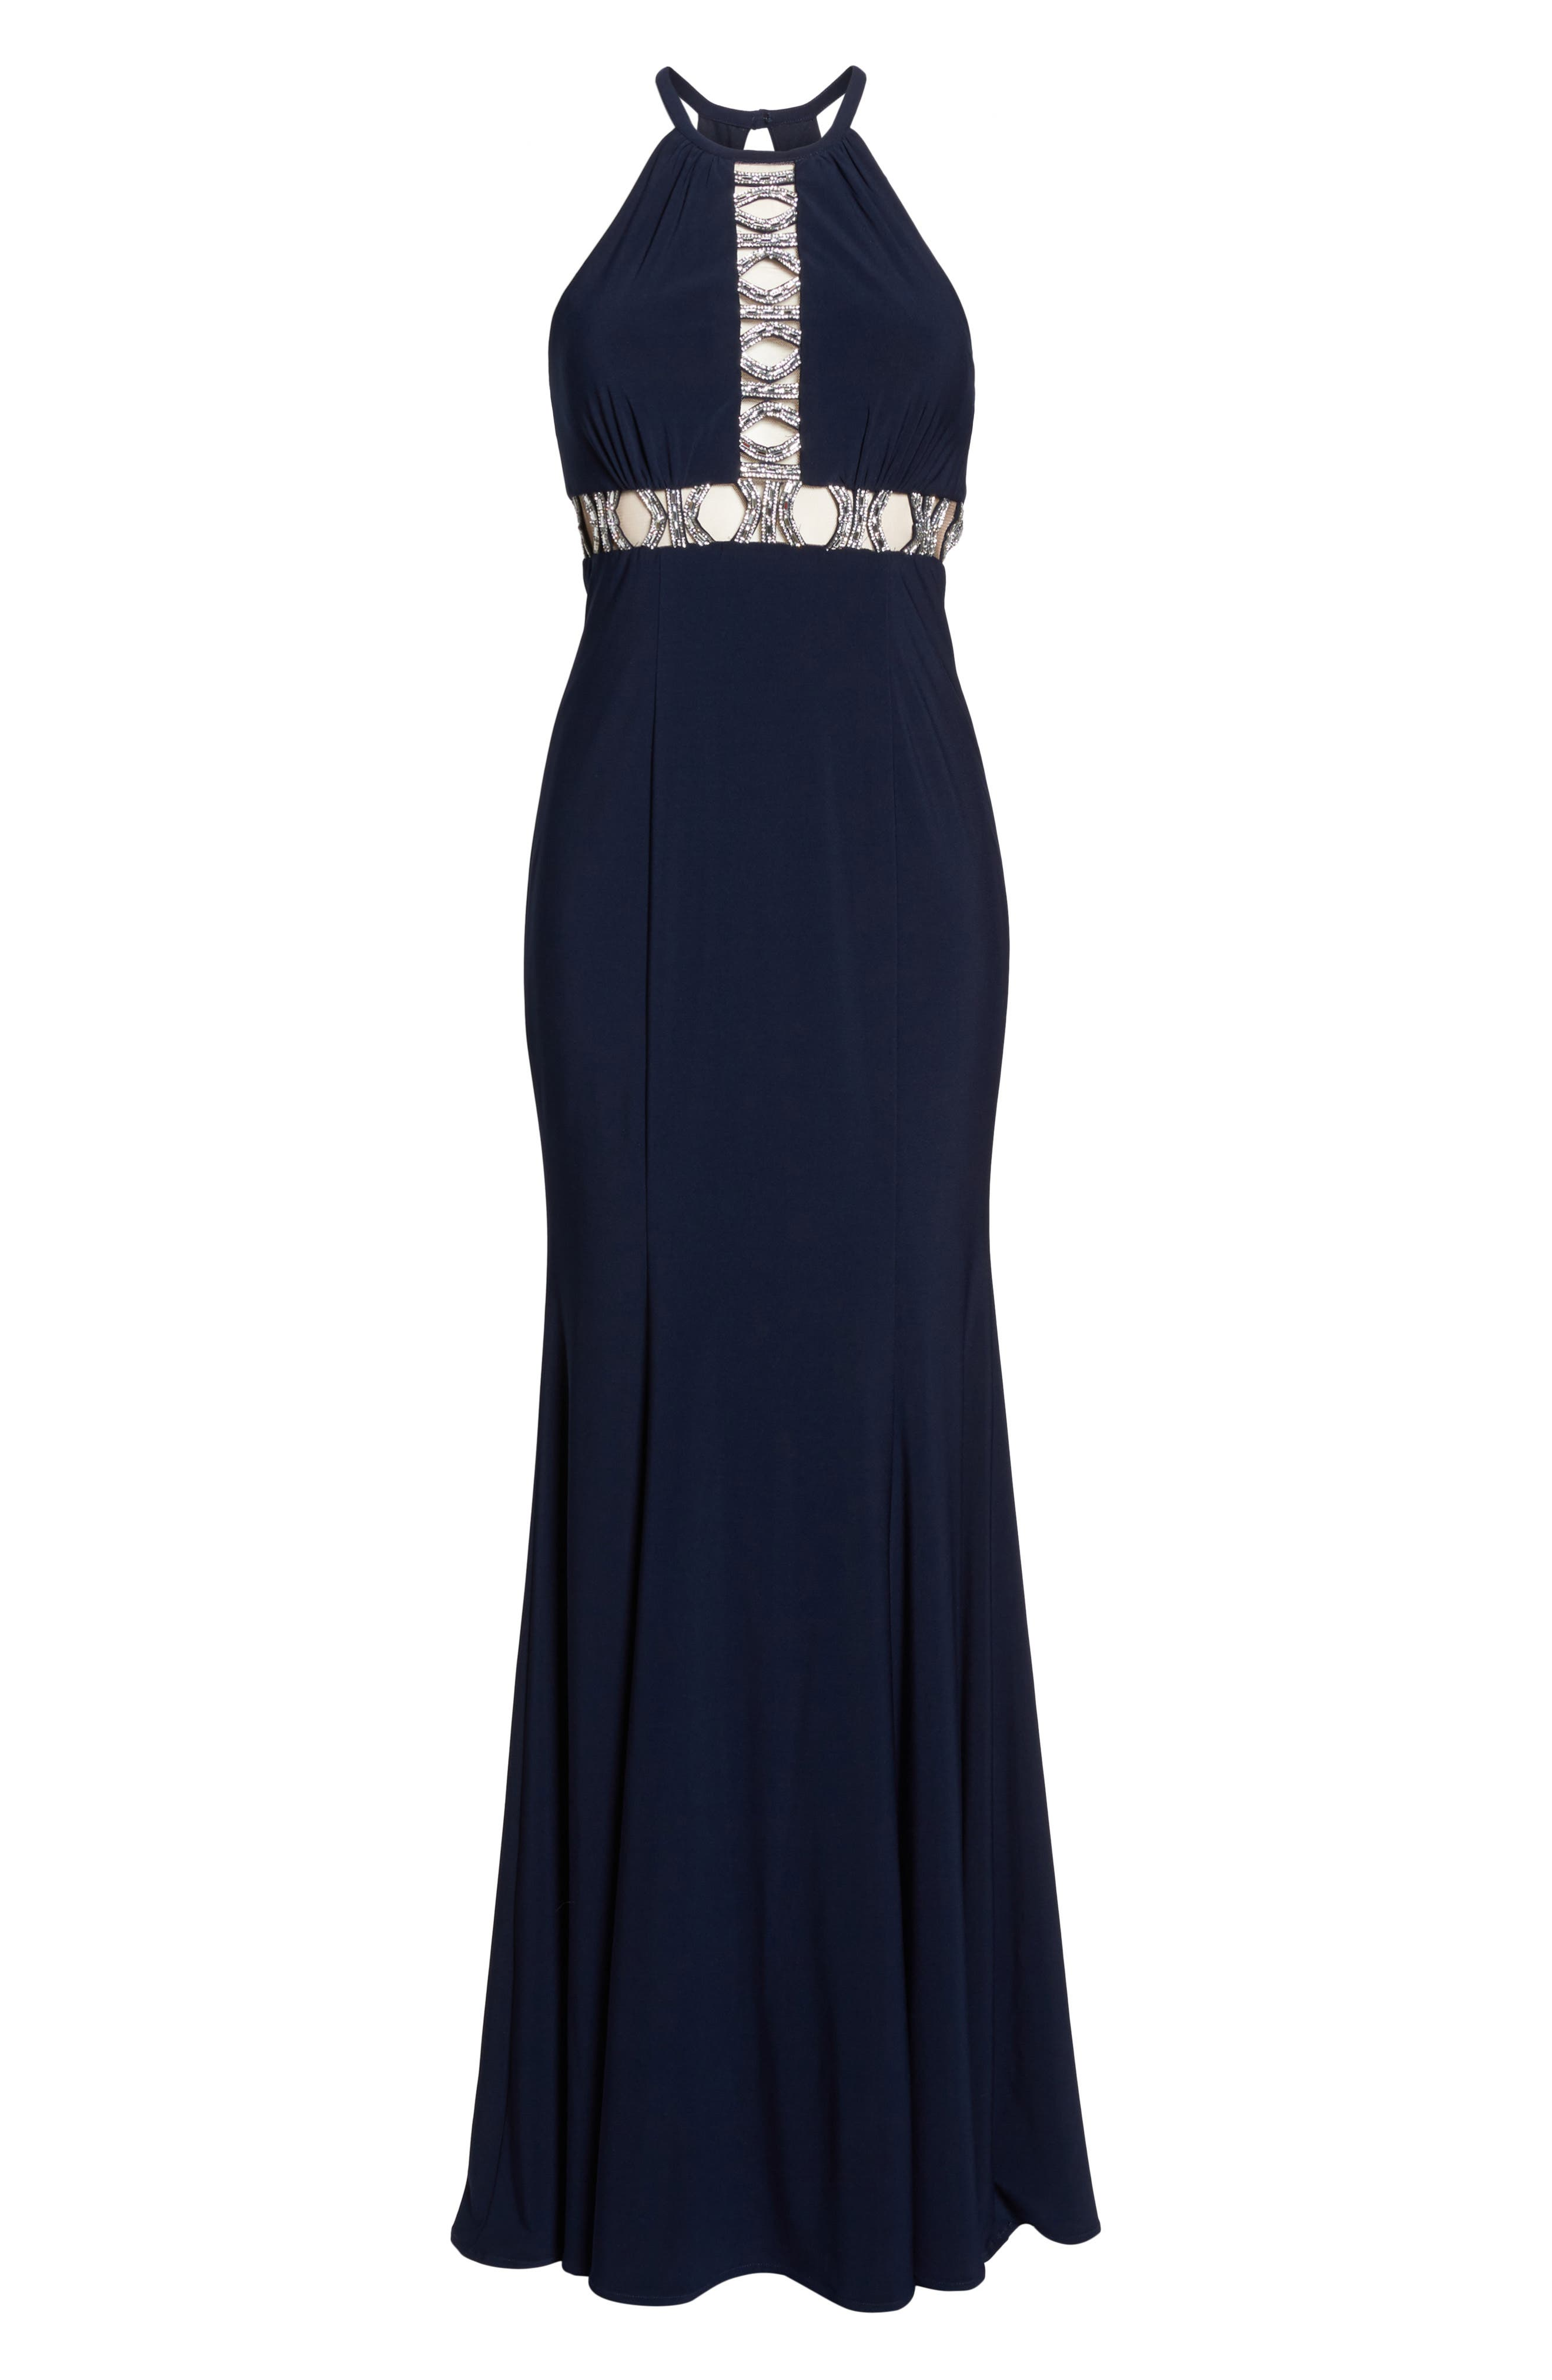 Embellished Halter Mermaid Gown,                             Alternate thumbnail 6, color,                             Navy/ Silver